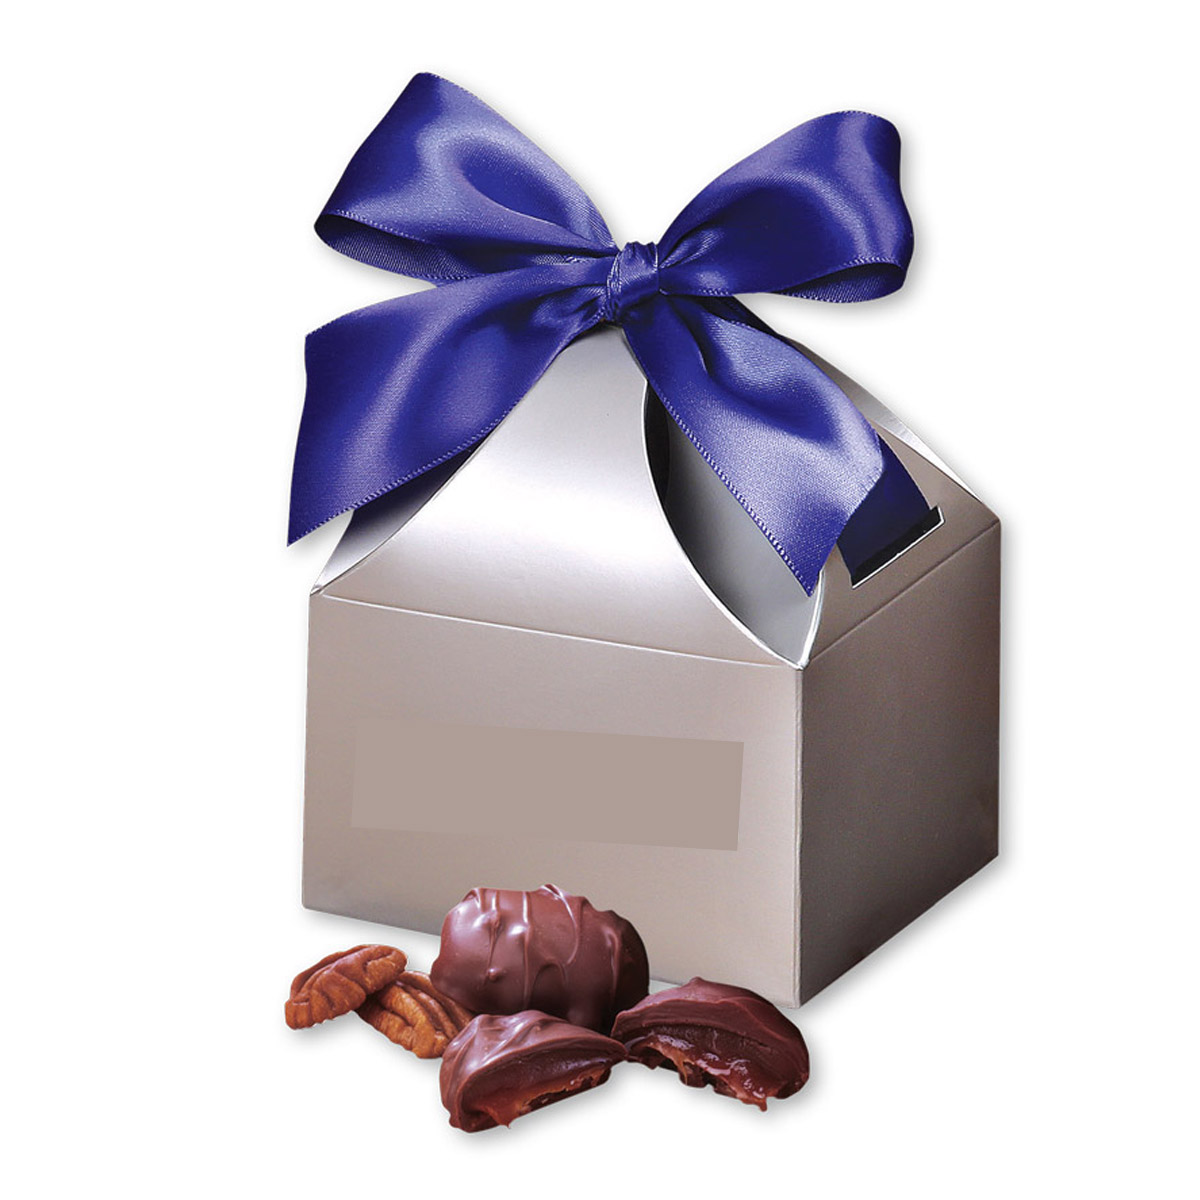 Copper Pecan Turtles in Gift Box